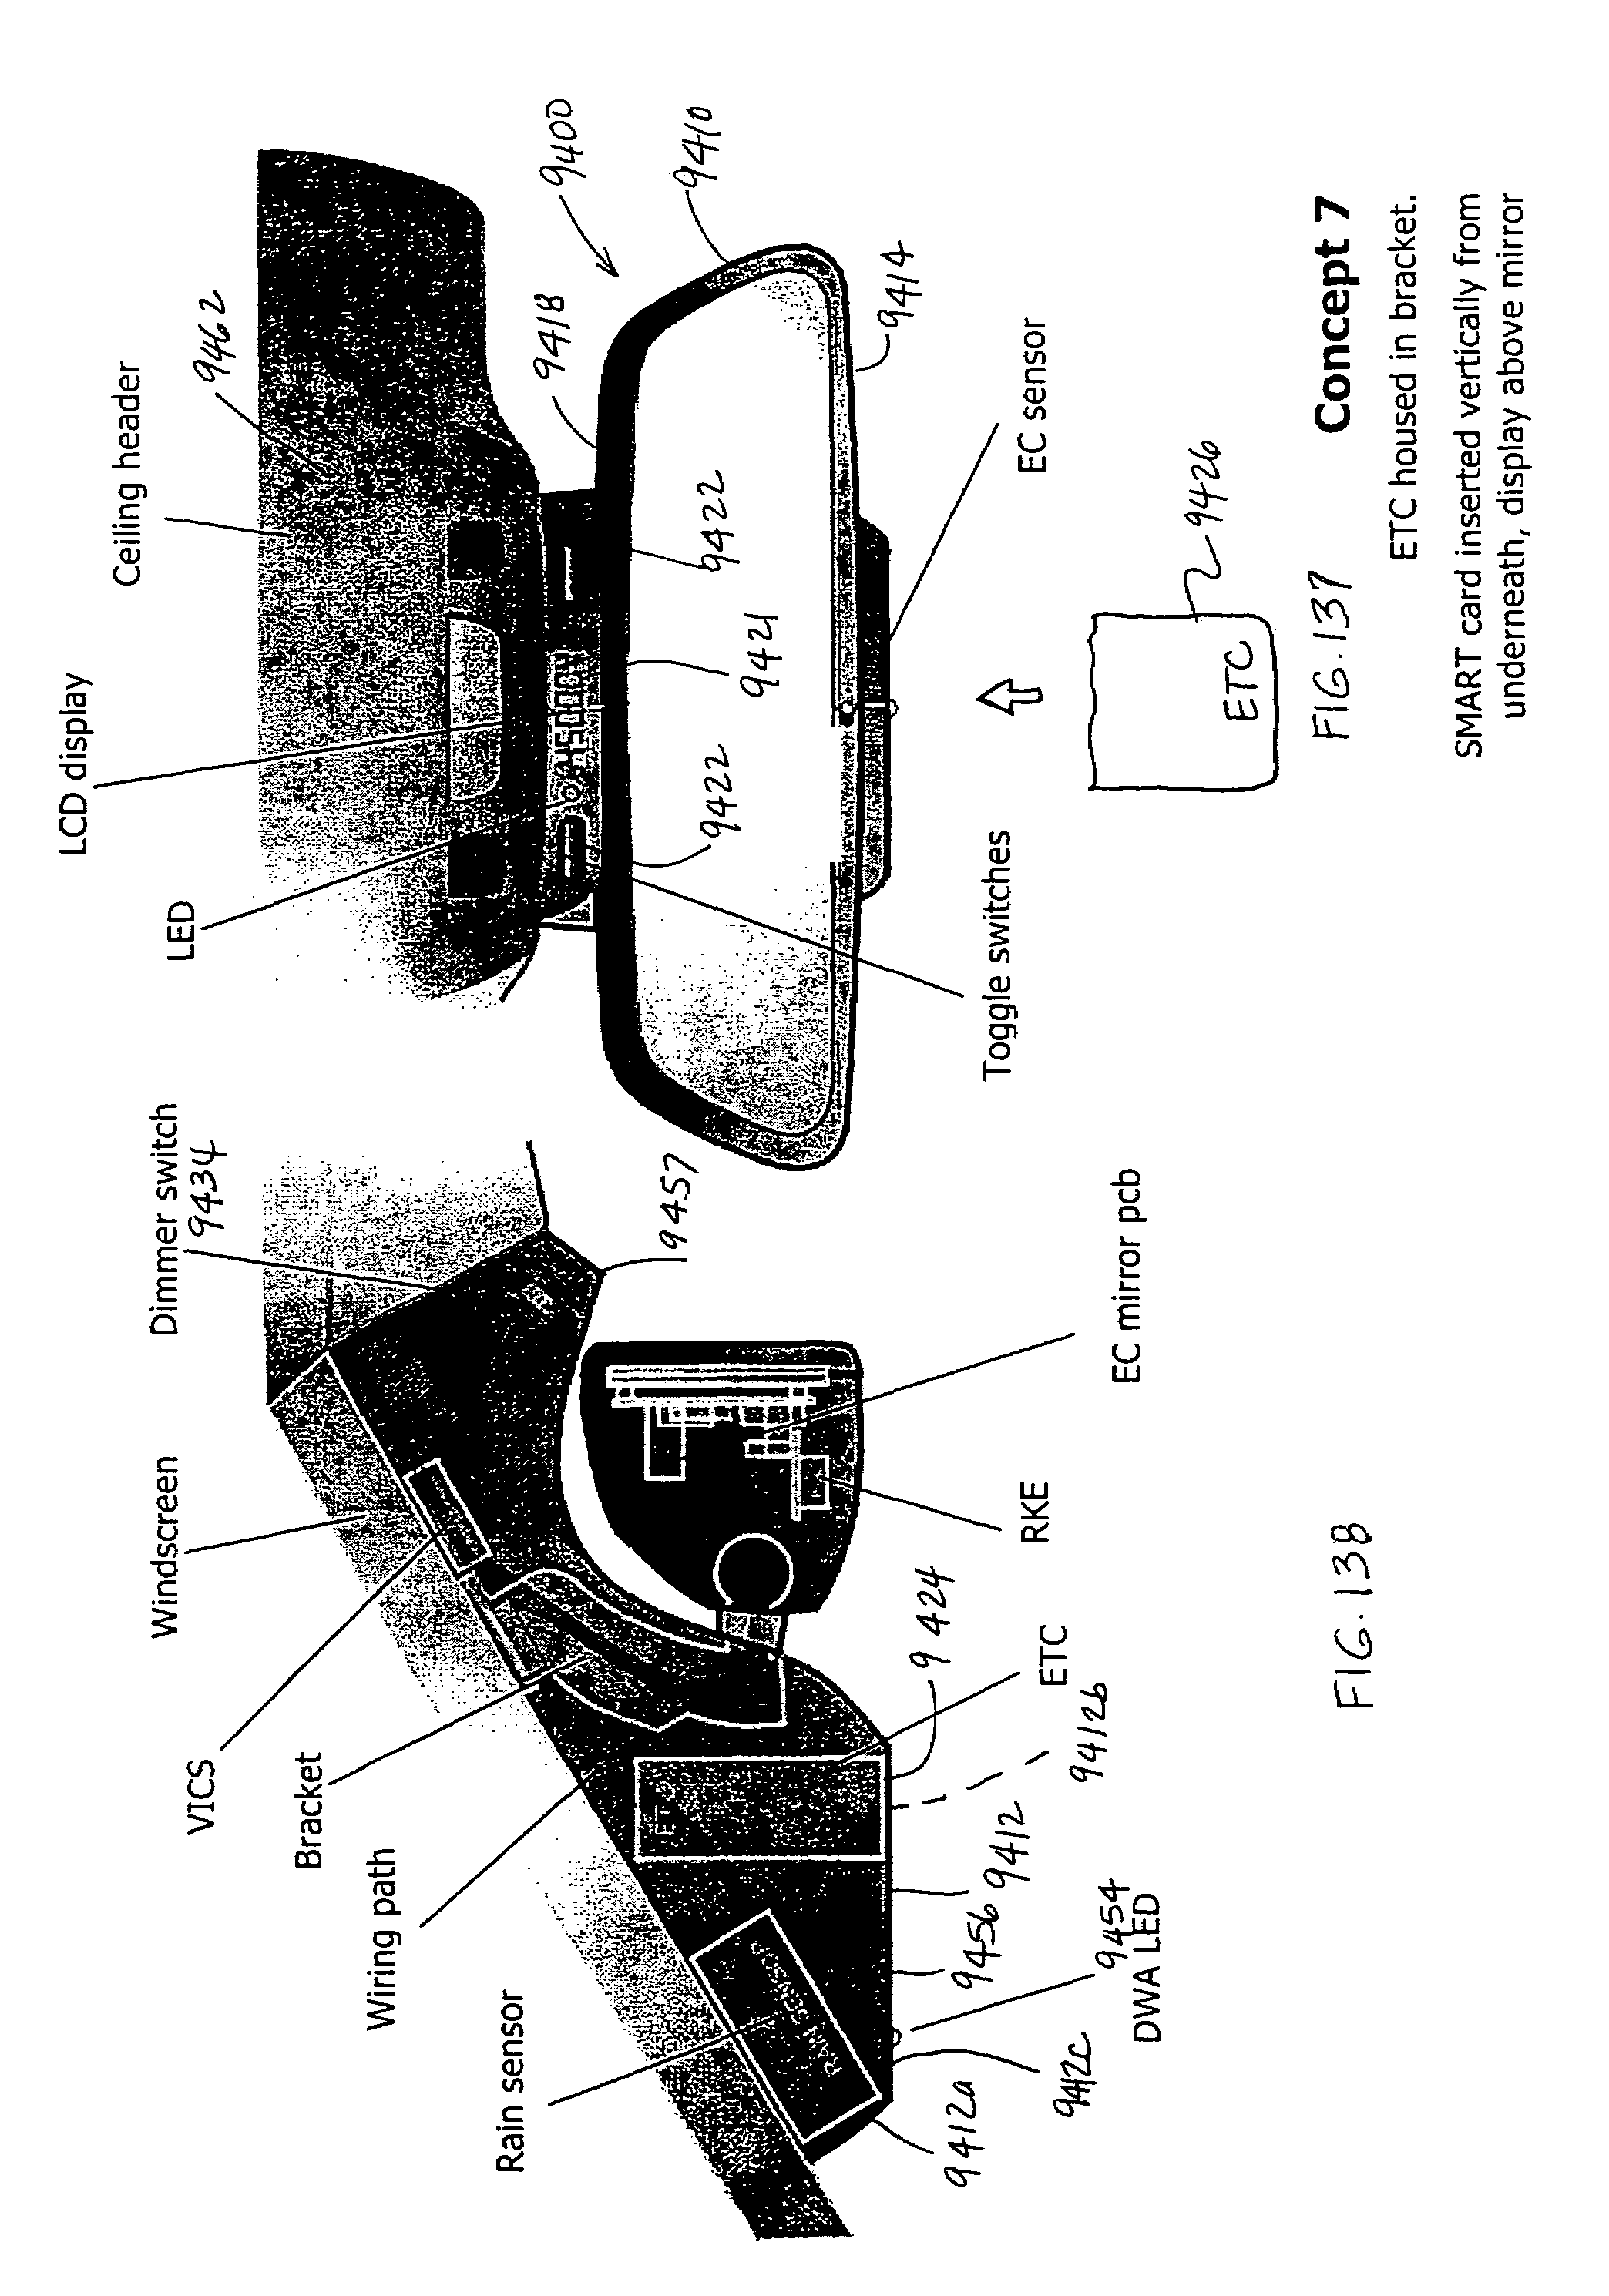 Patent Us 7446650 B2 Cb Radio Mic Wiring Diagrams Likewise Speakon Cable Diagram Images